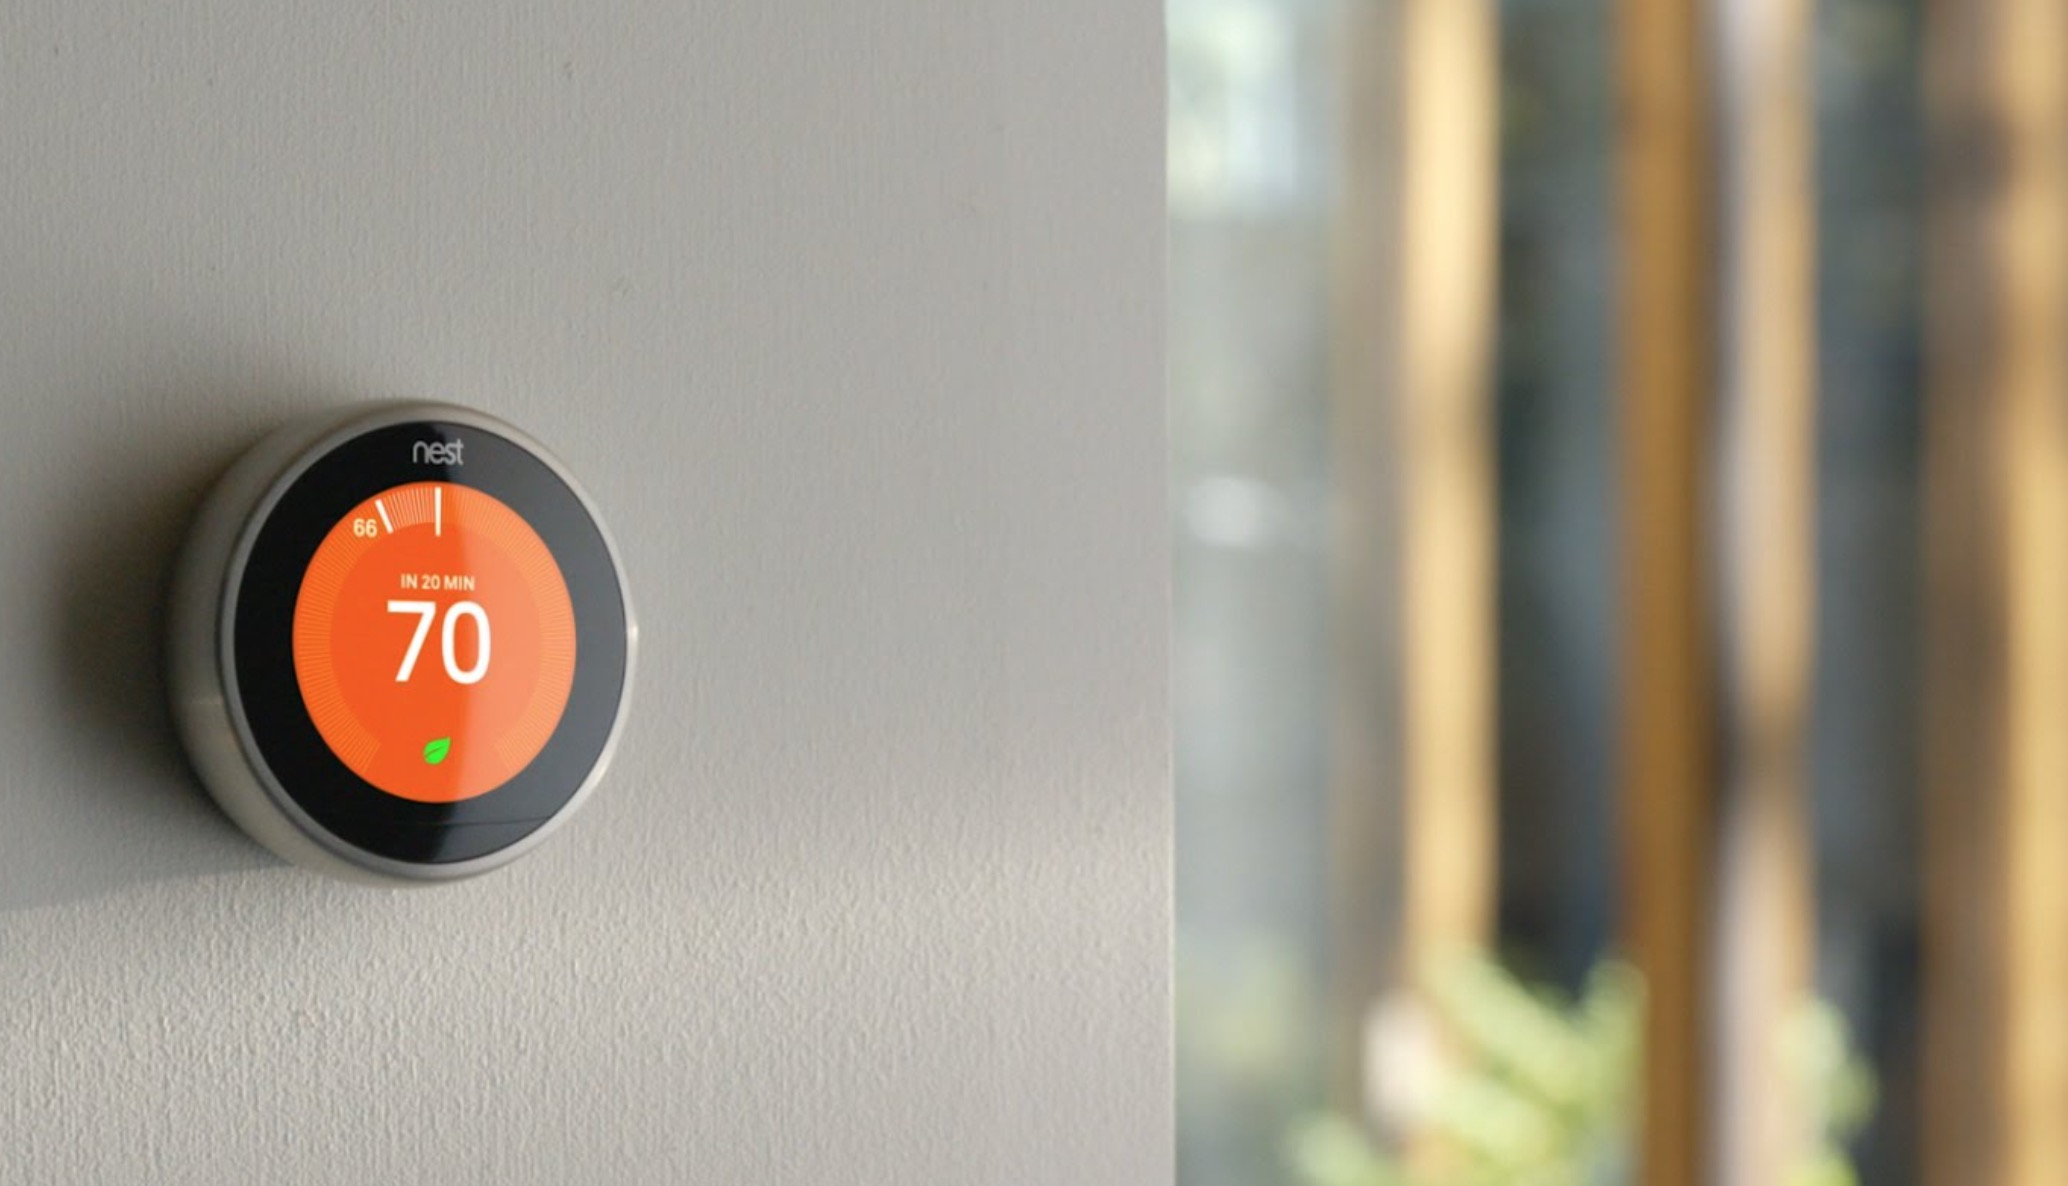 Nest arriva in Italia, il termostato intelligente di Google